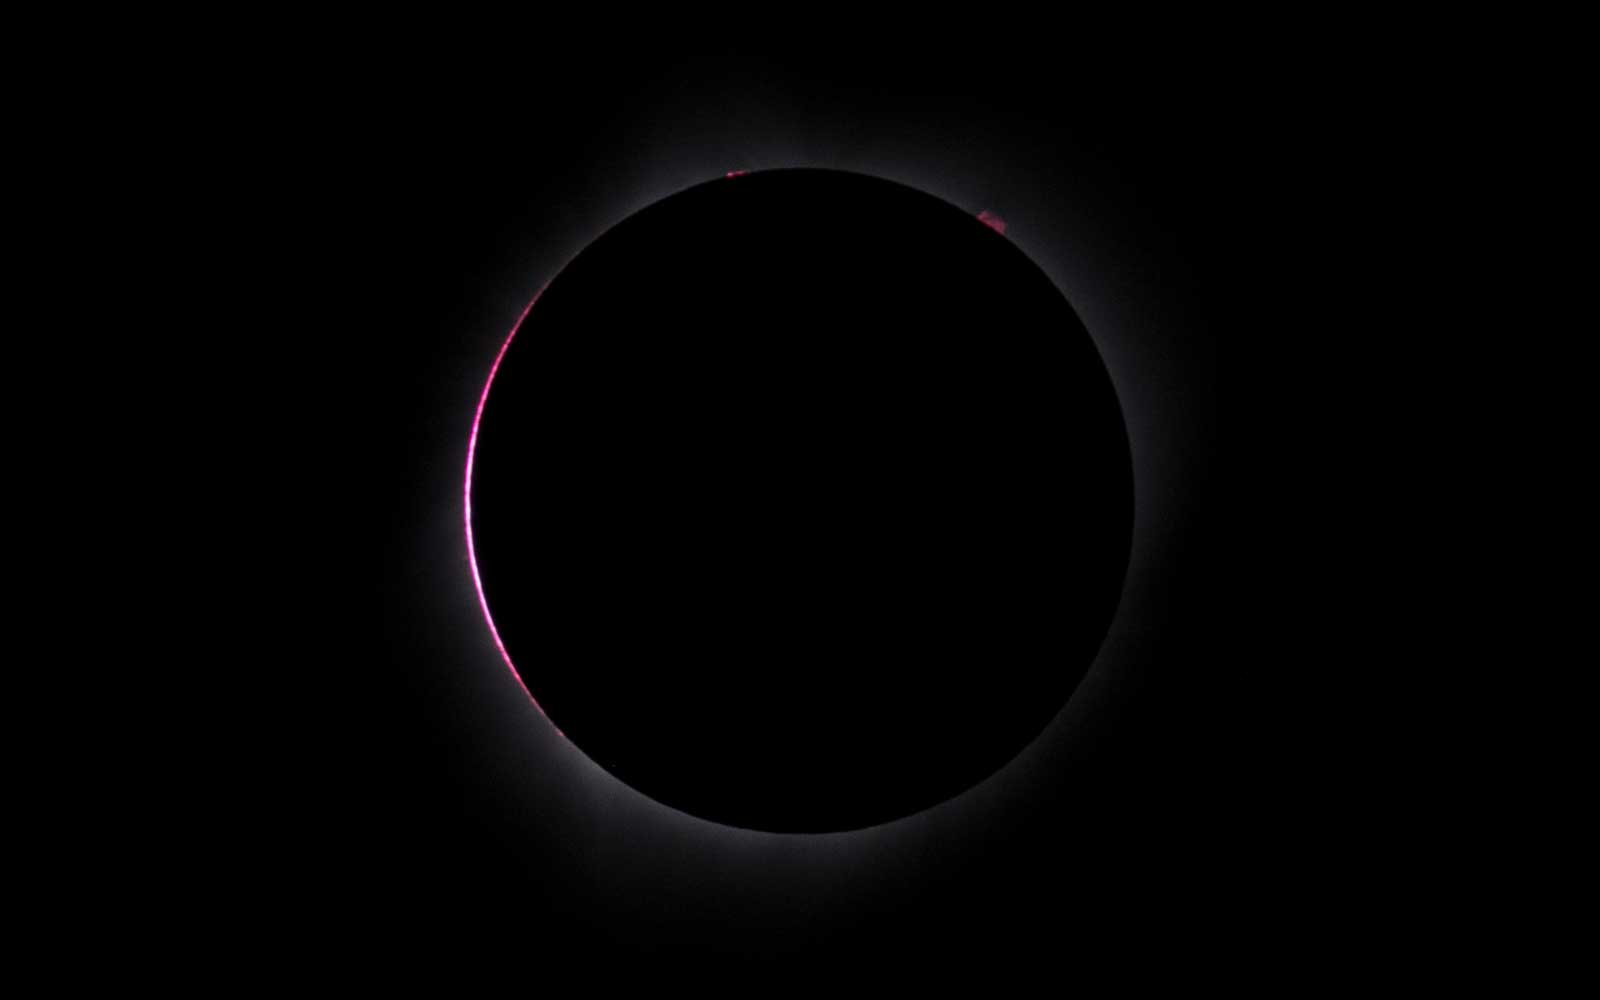 The solar eclipse reaches totality on August 21, 2017 in Amity, Oregon